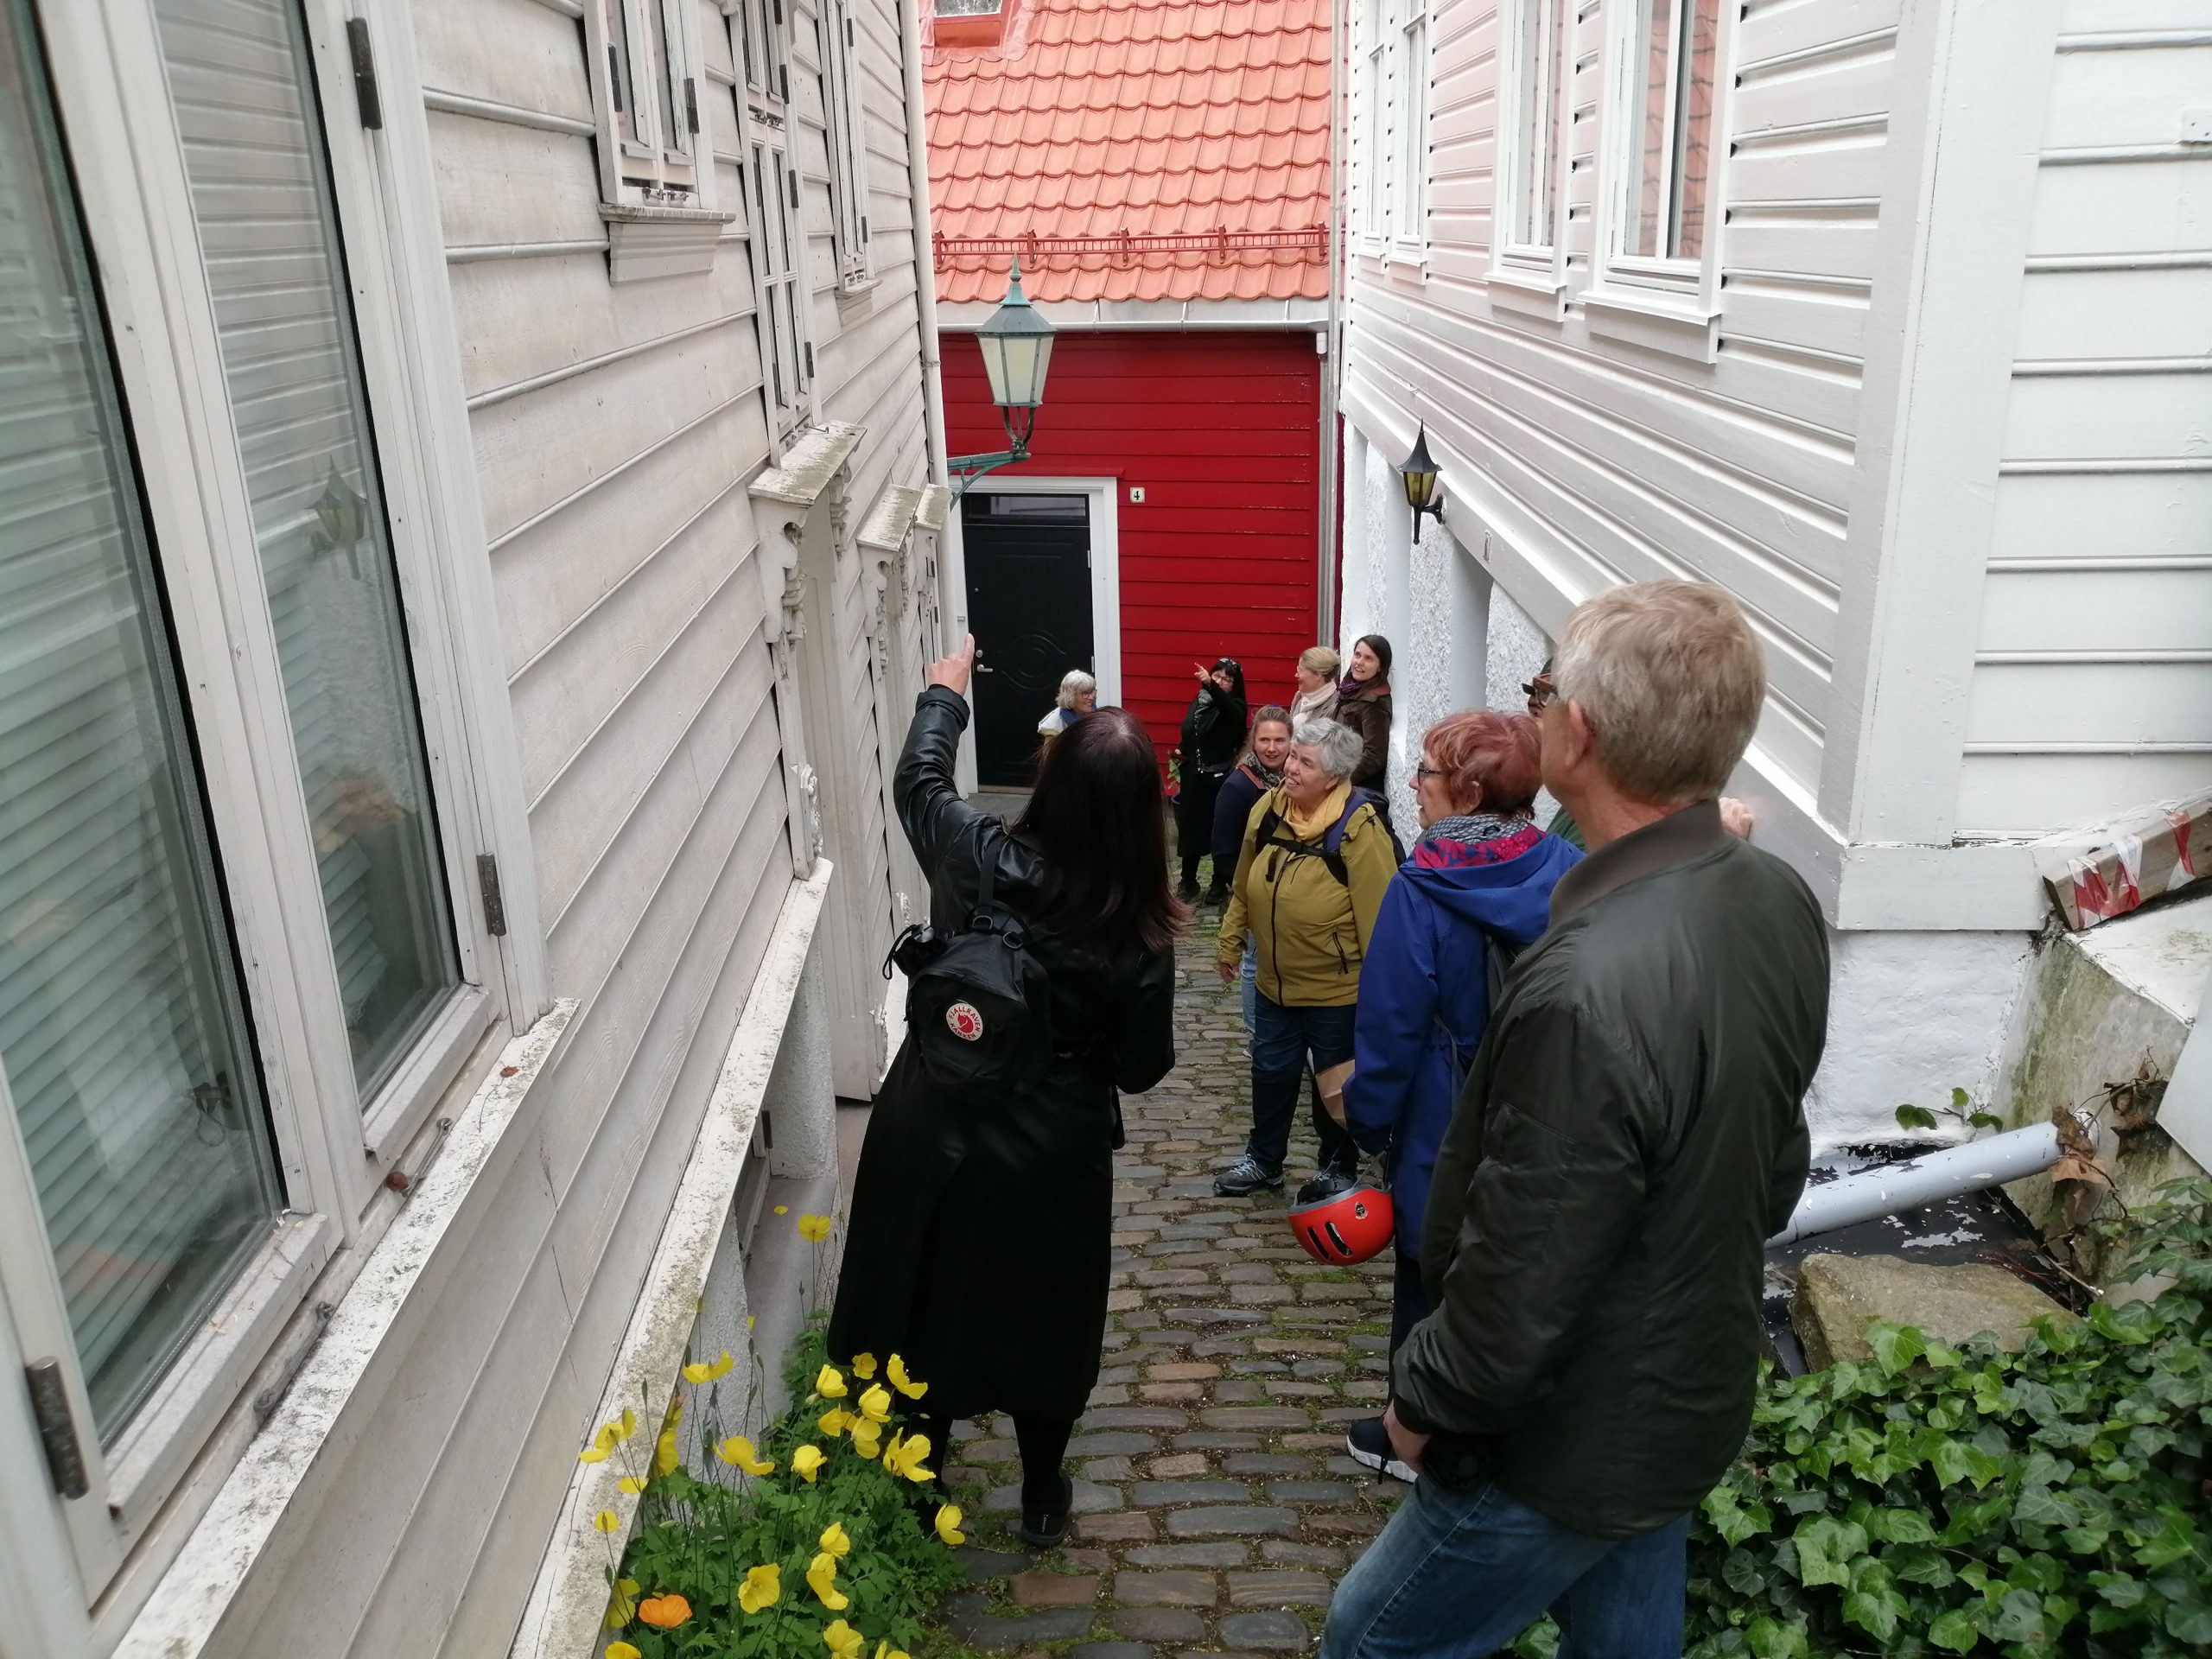 Alt Går Bra – Guided City Walks: Akantus